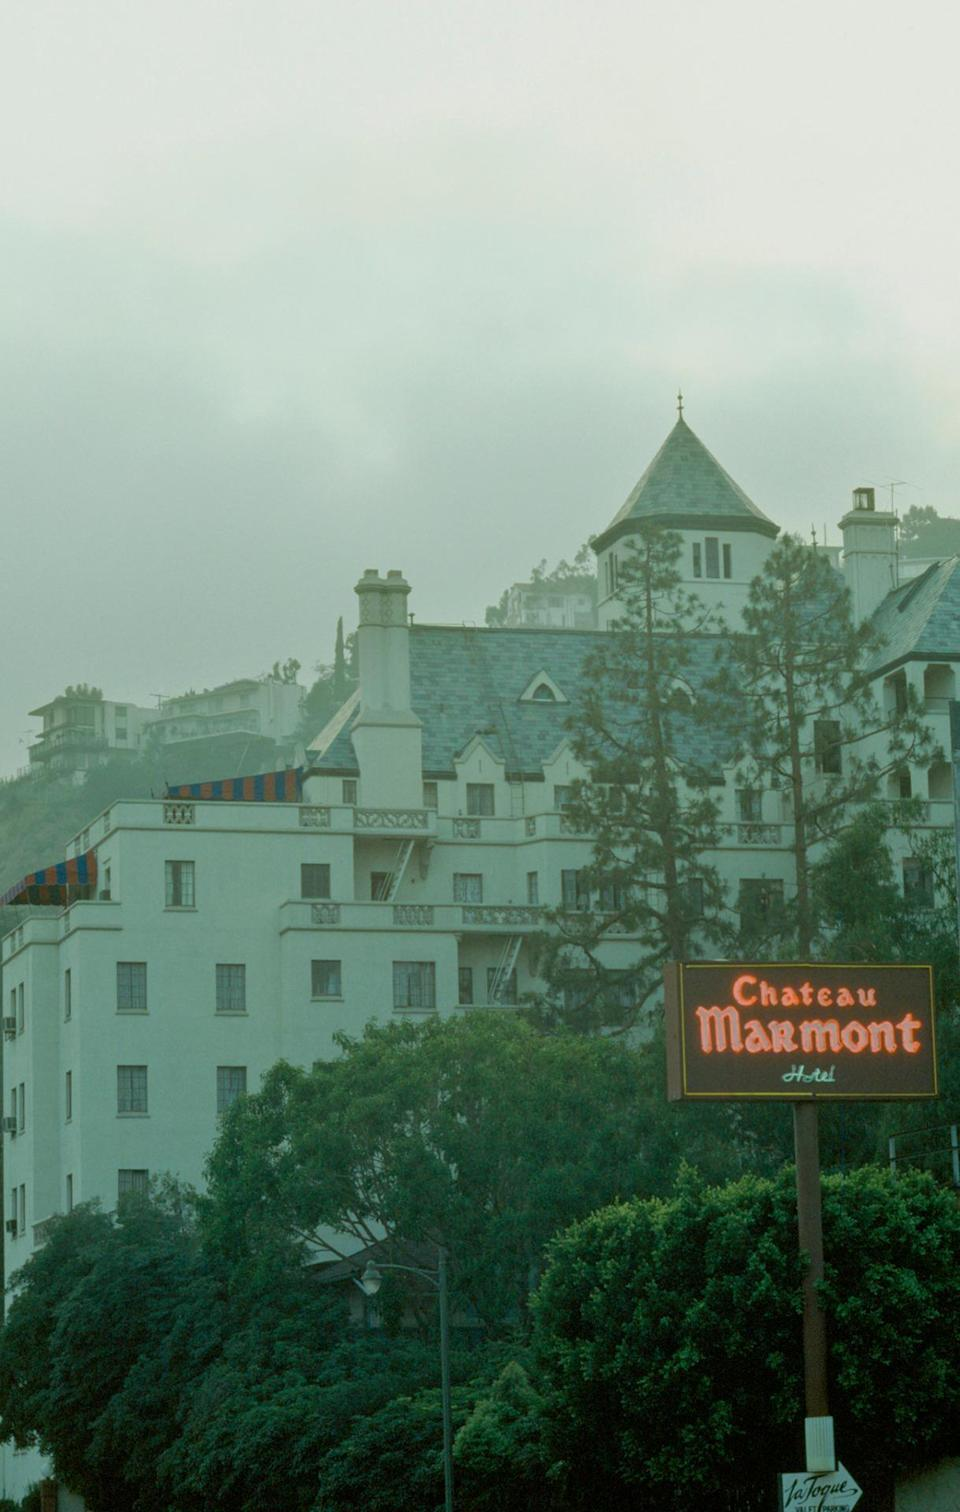 John Belushi's ghost reportedly lurks at the Chateau Marmont on Hollywood Boulevard. (Photo: Everett Collection)